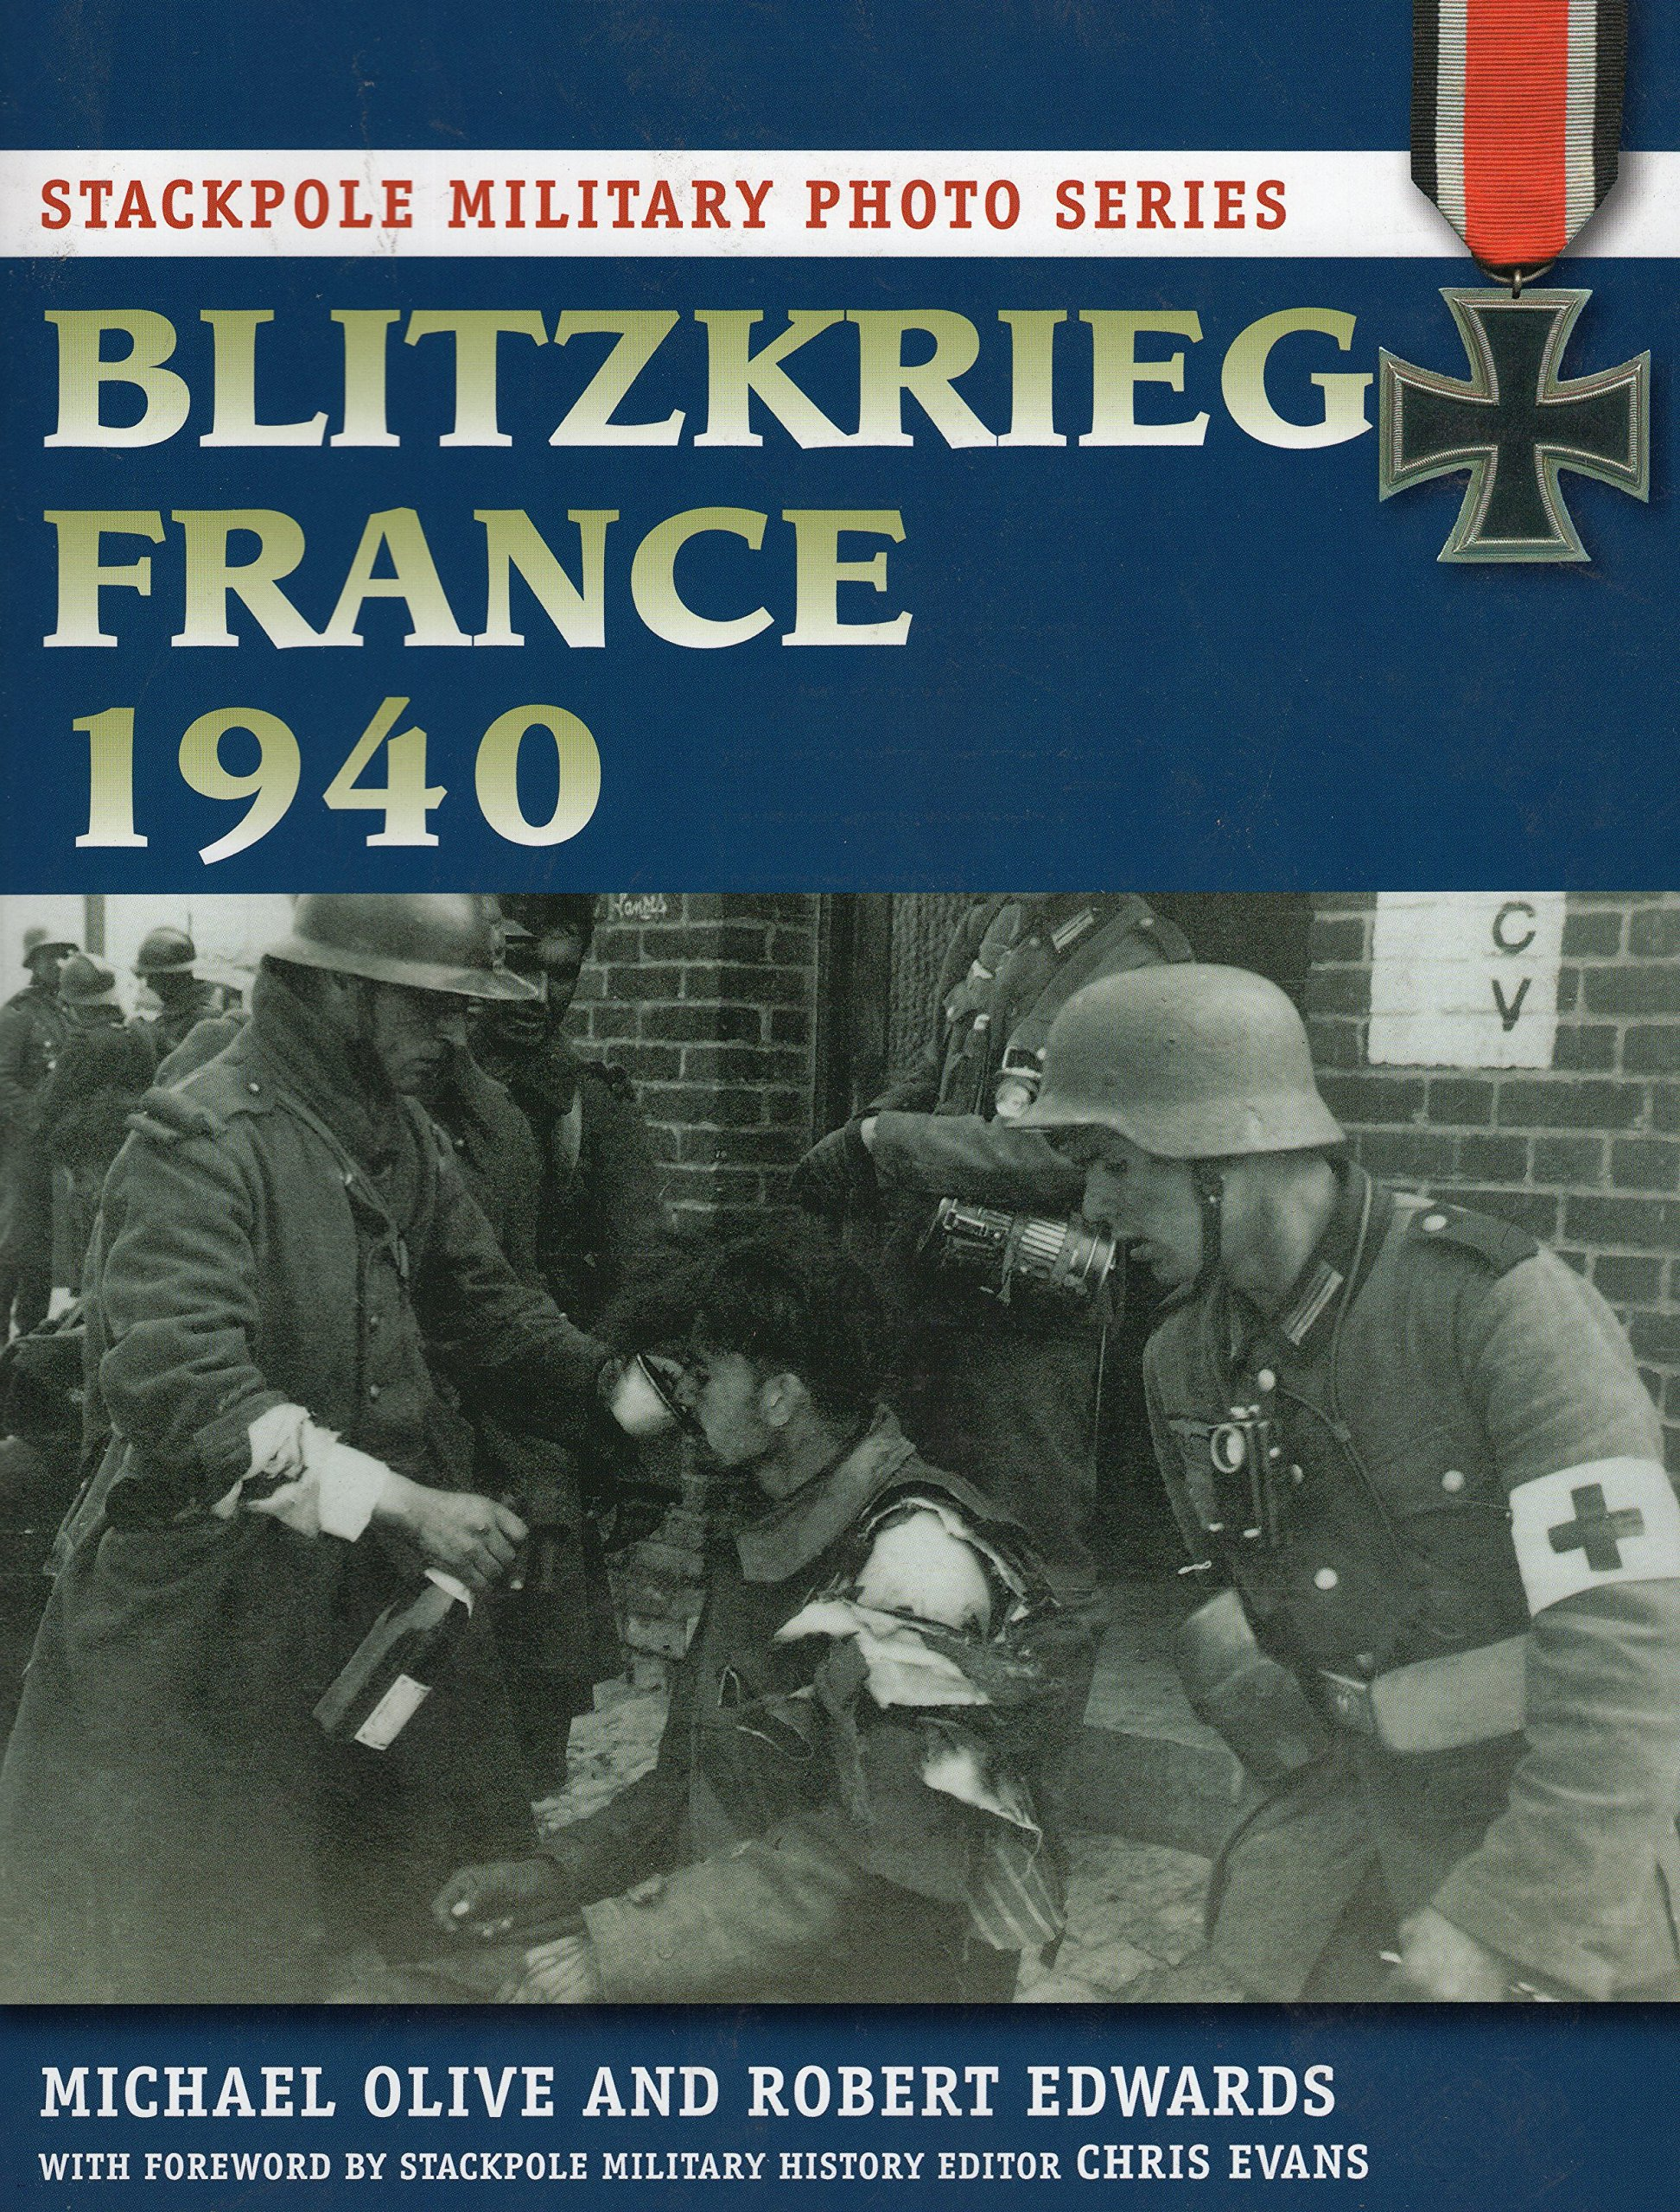 Blitzkrieg France 1940 (Stackpole Military Photo Series) PDF